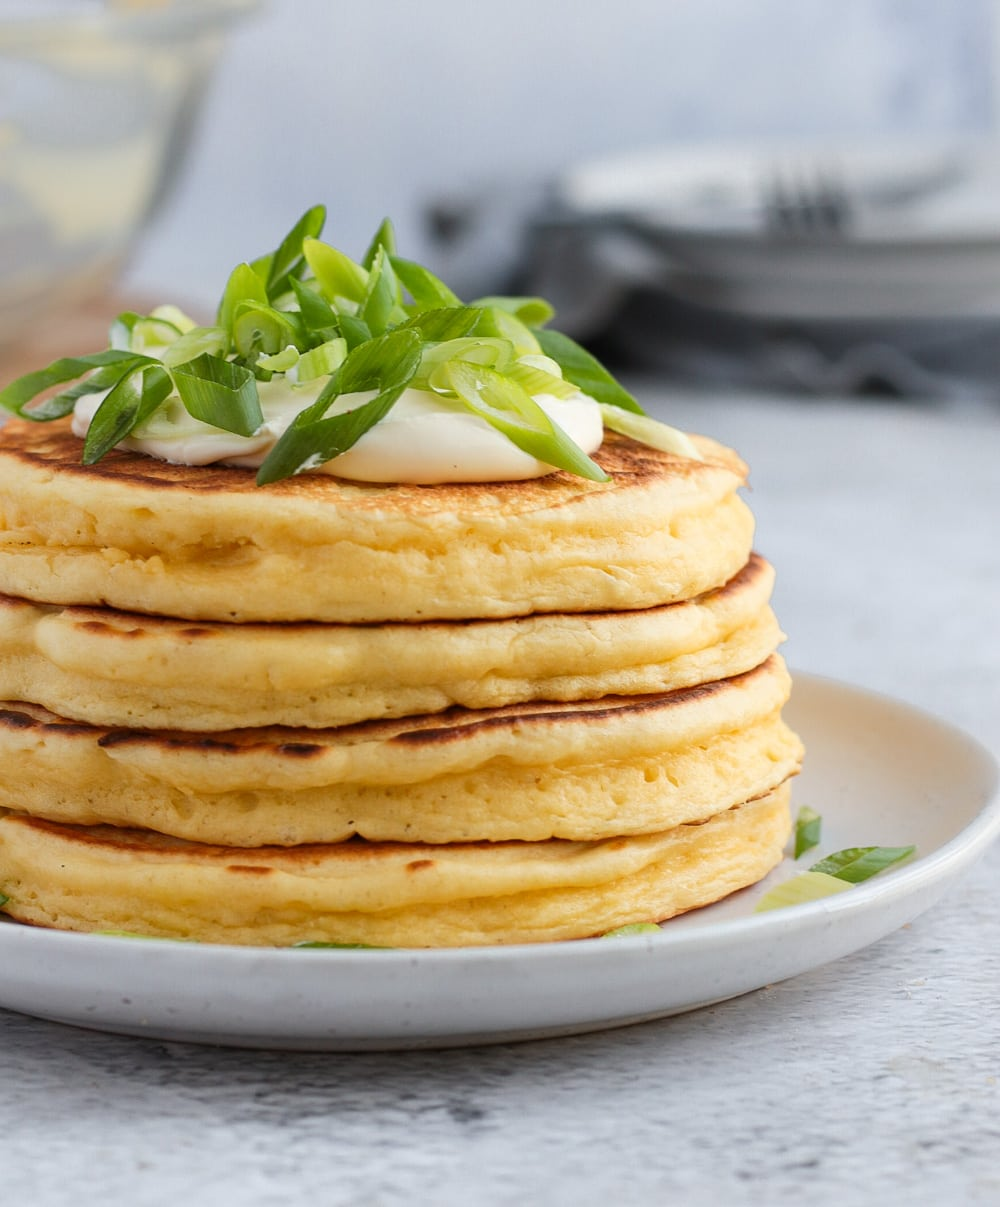 Side view on the stack of cheese pancakes